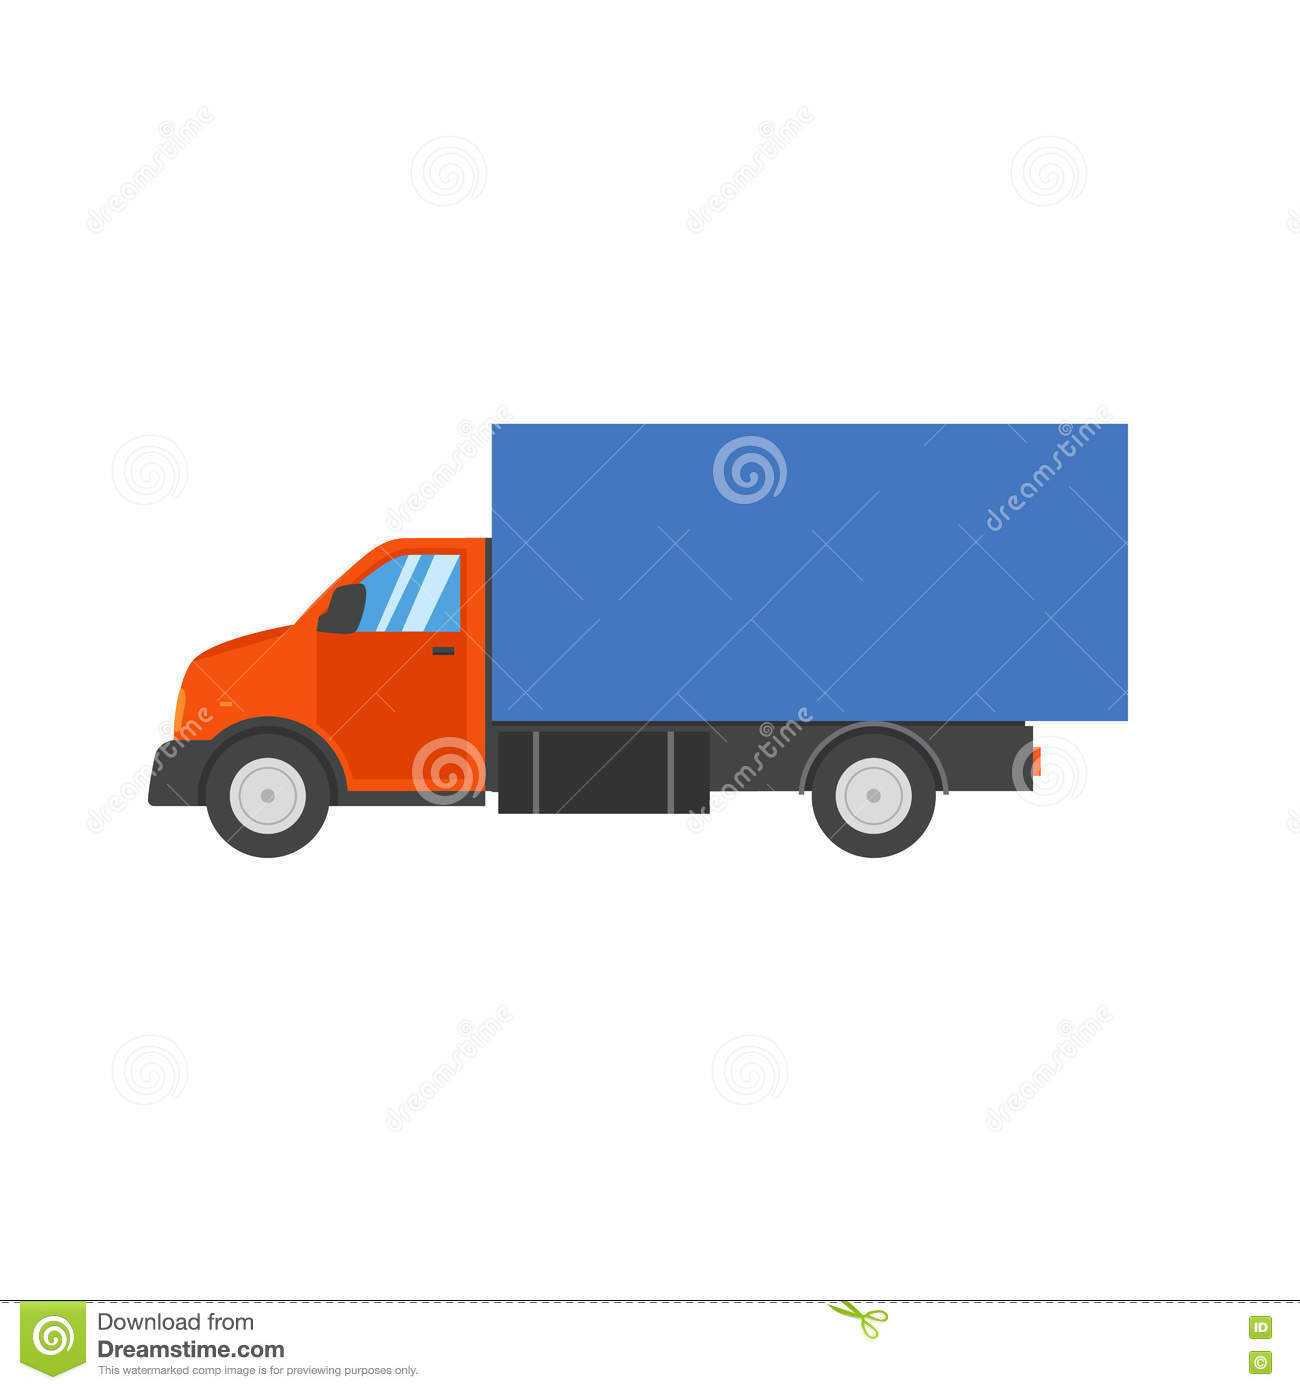 Choose one of the following transportation vehicles and explain why...